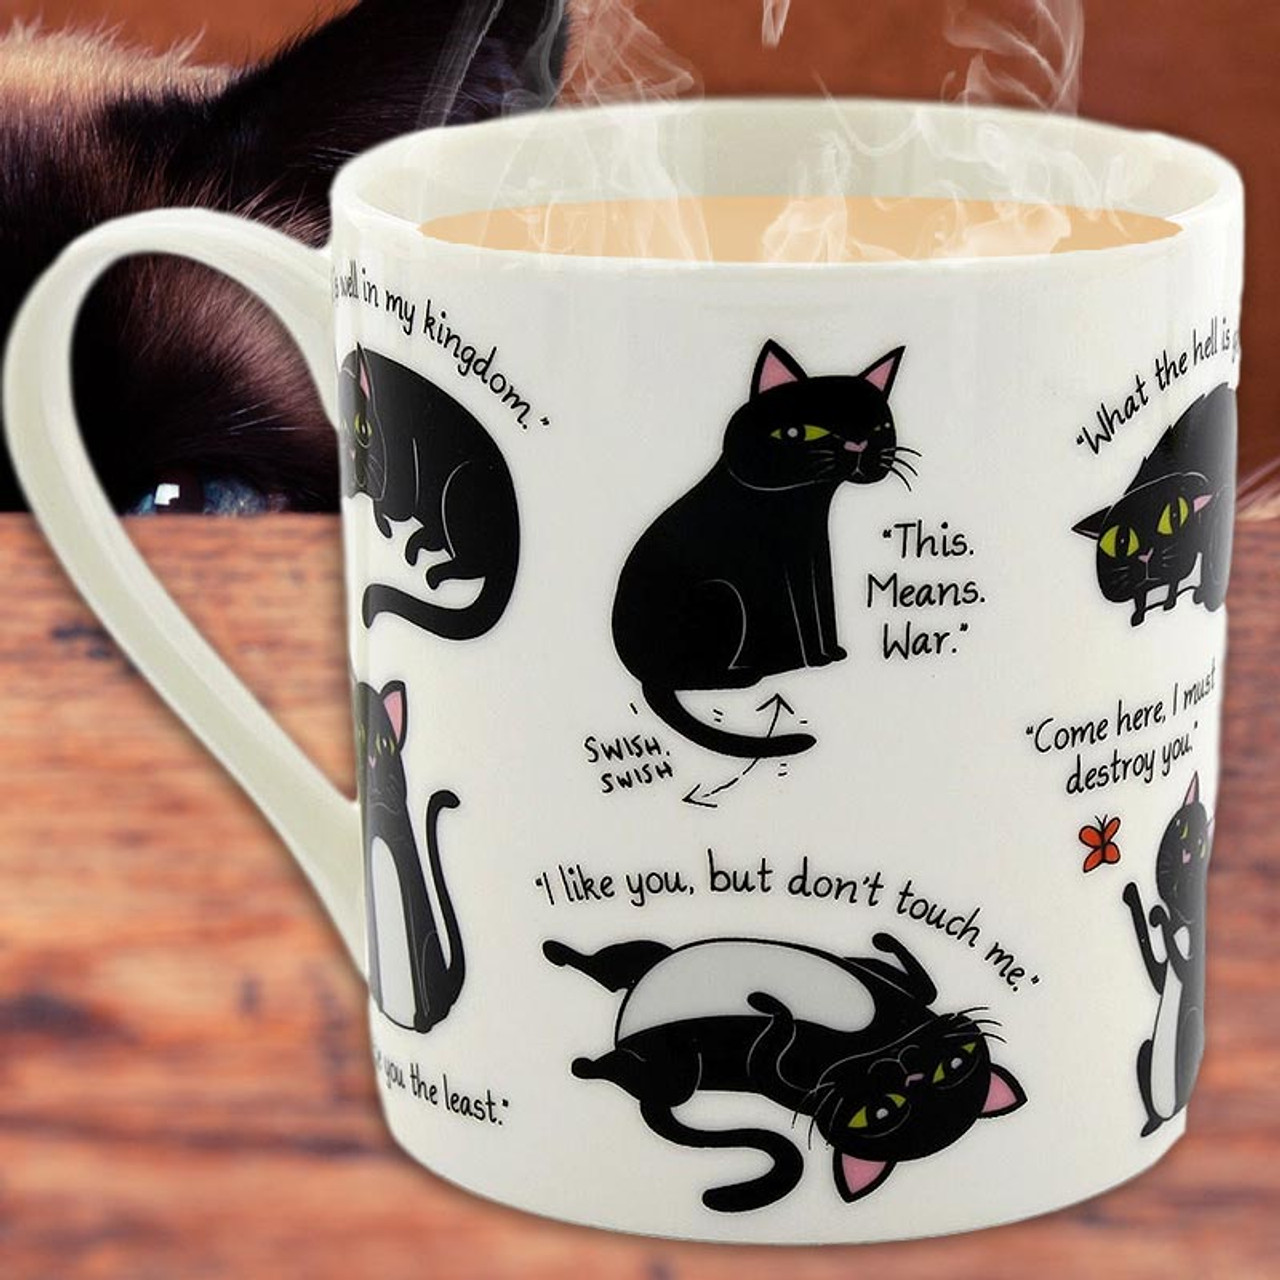 Cats with Attitude - What do they mean,